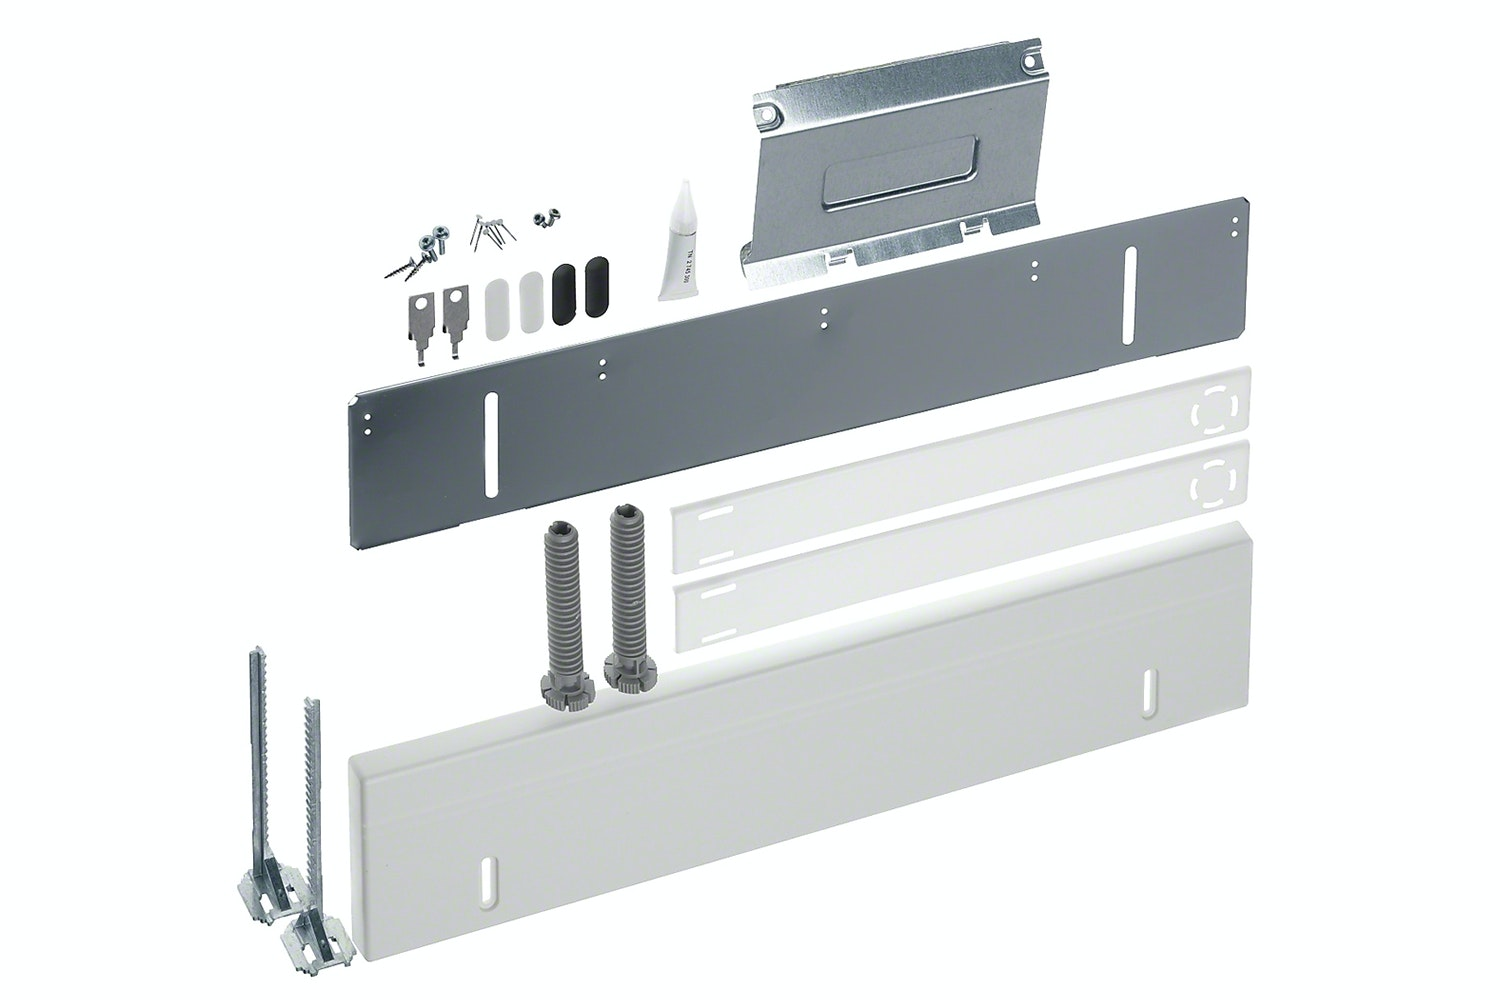 Miele UBS G 60-1  Dishwasher built-under kit   for the perfect installation of a built-under dishwasher